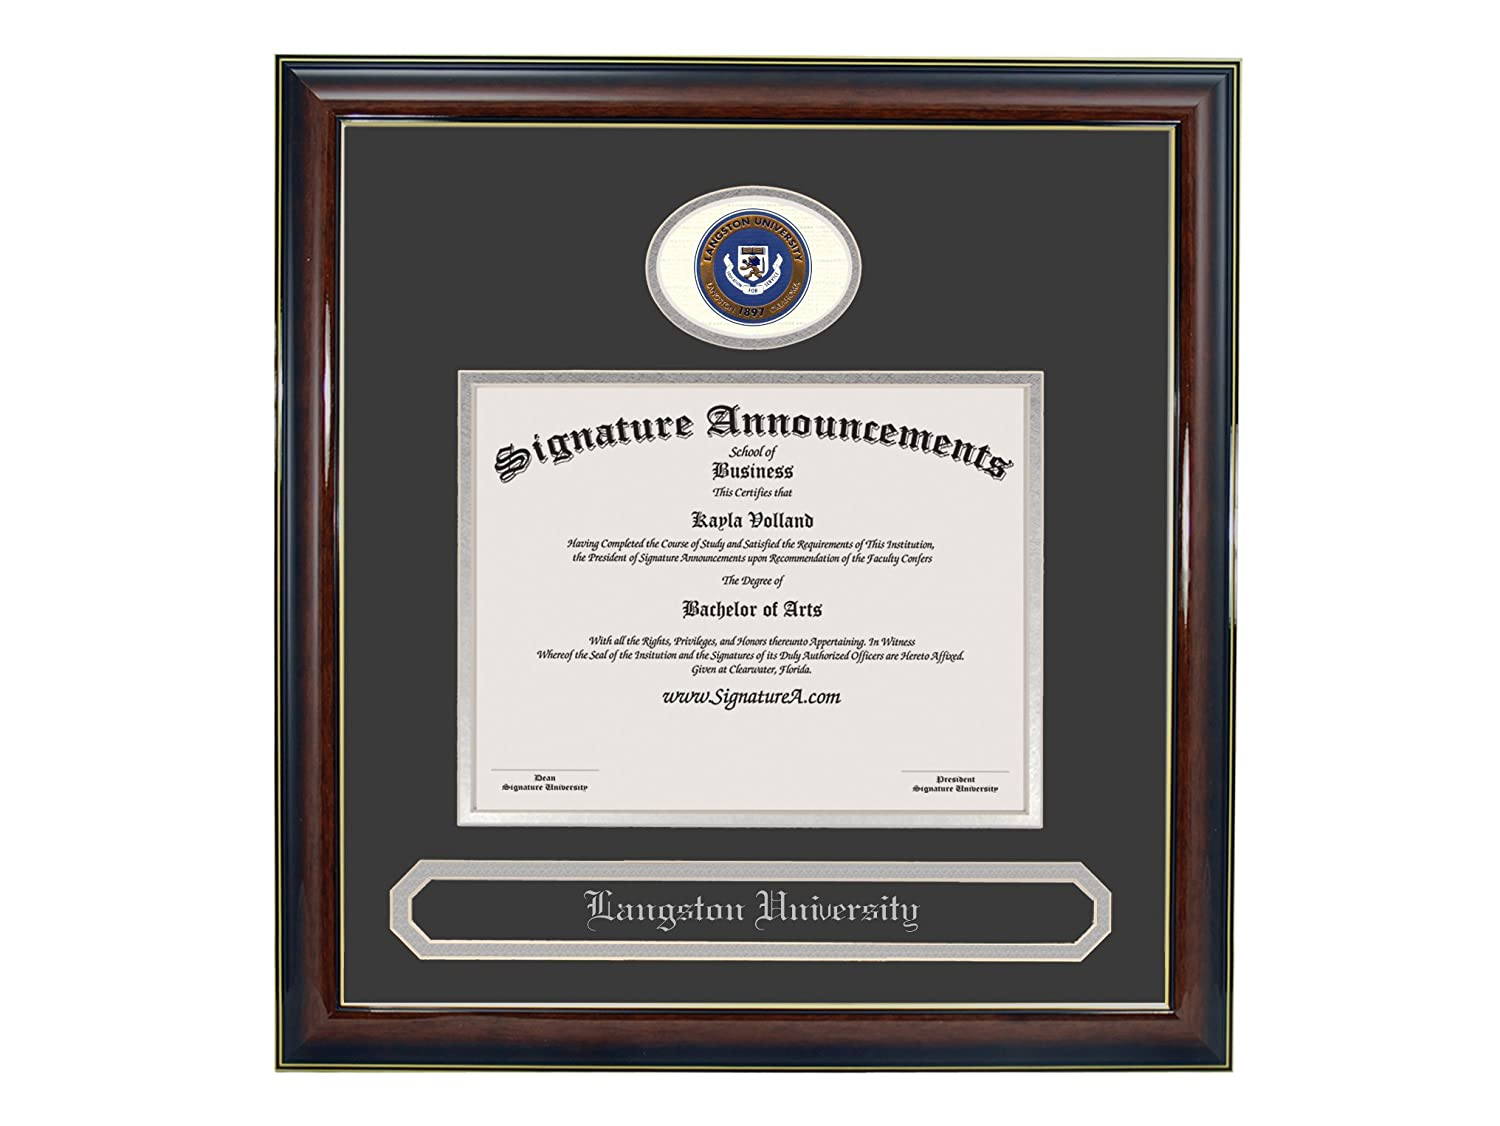 Professional//Doctor Sculpted Foil Seal /& Name Graduation Diploma Frame 16 x 16 Gold Accent Gloss Mahogany Signature Announcements Langston-University Undergraduate